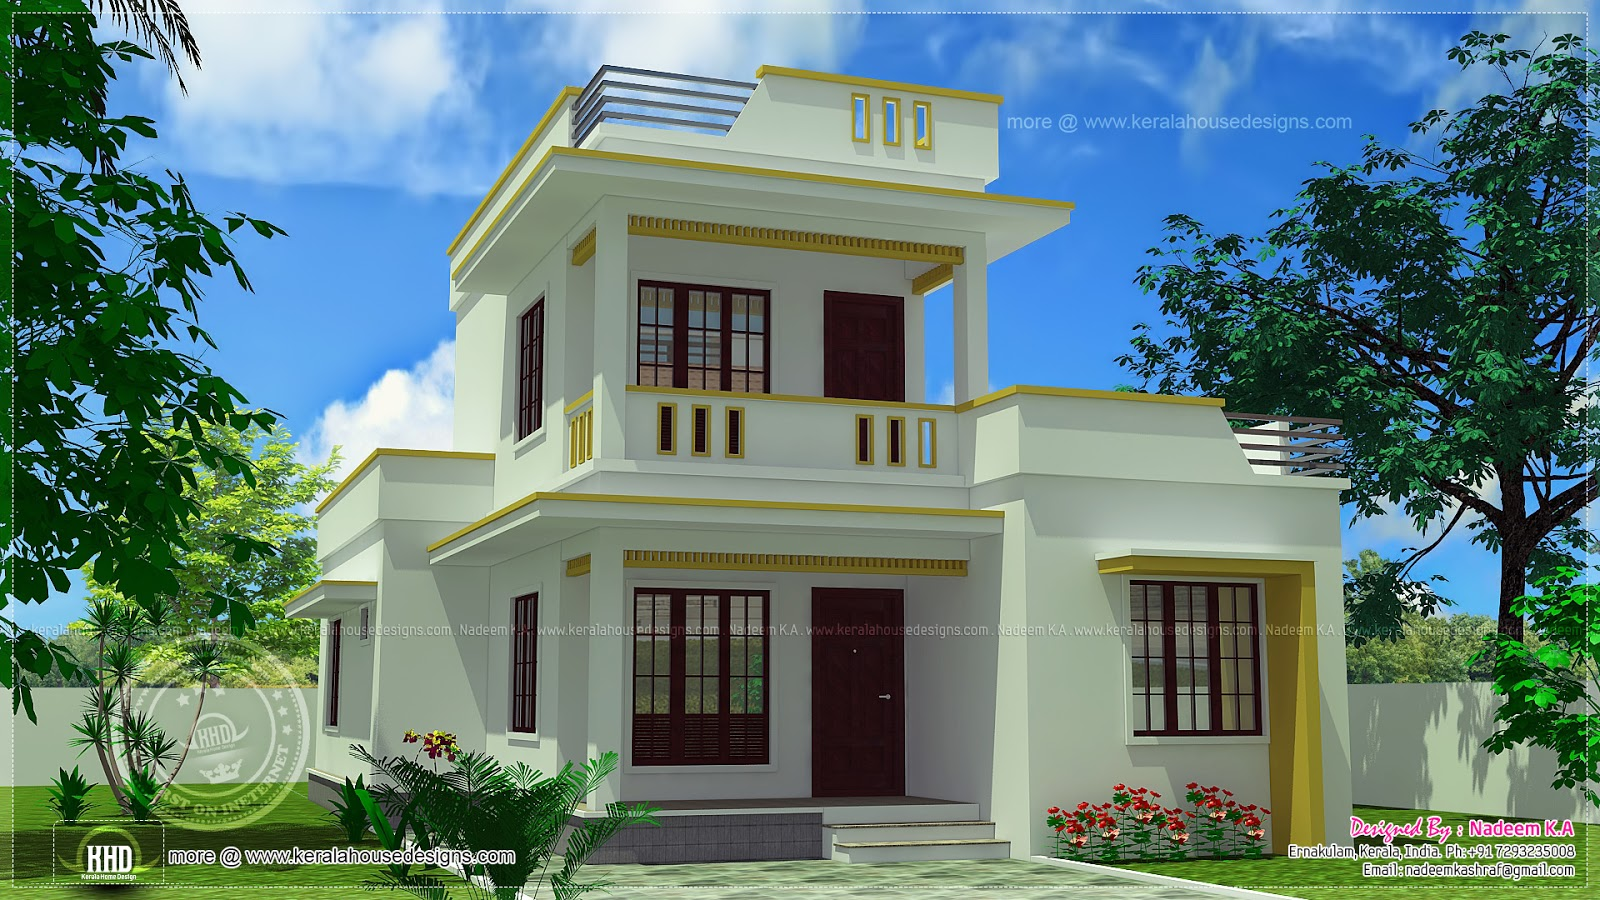 August 2013 kerala home design and floor plans for Design small house pictures